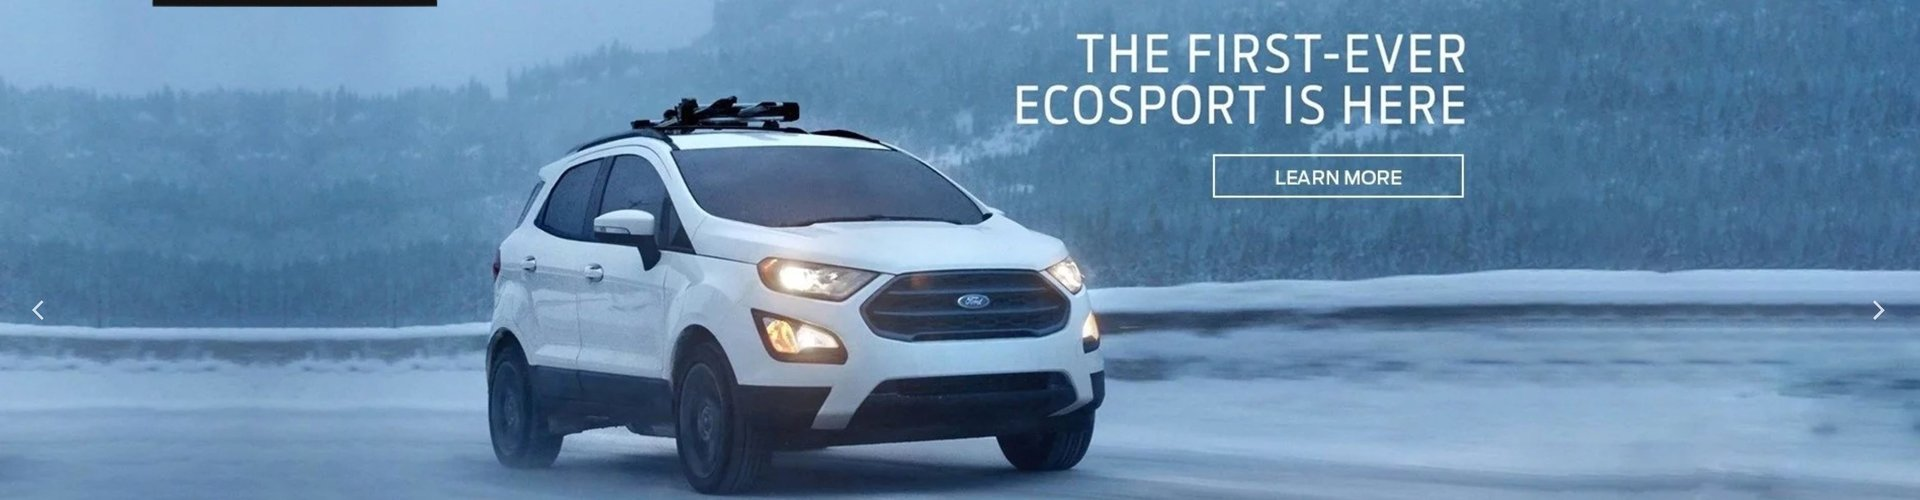 The First Ever Ecosport is here